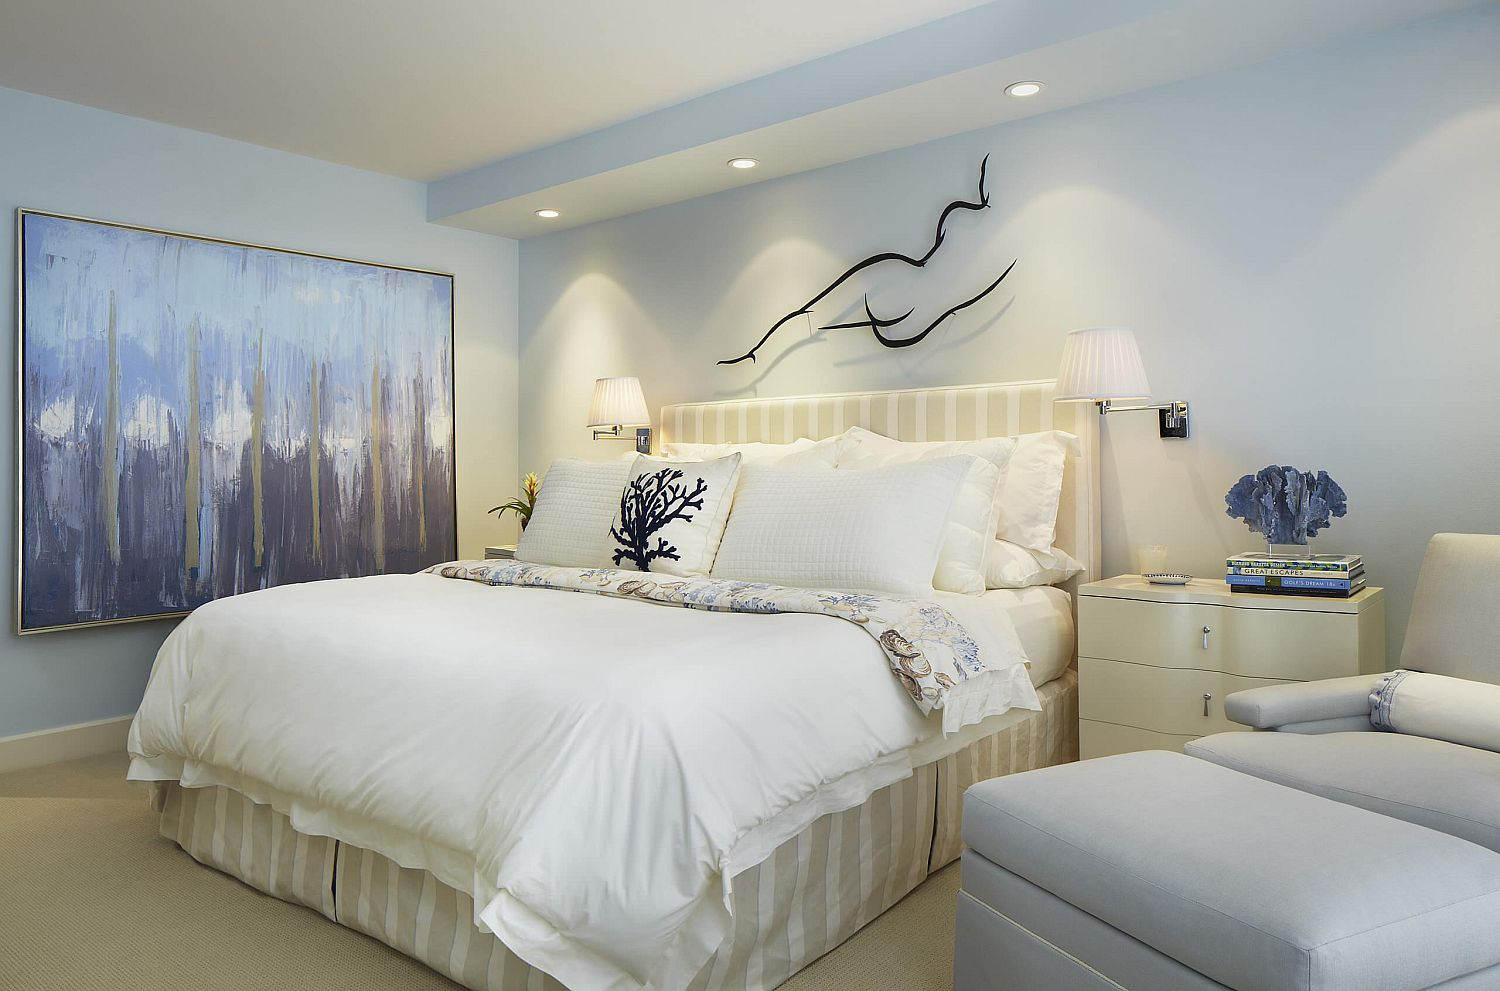 White-and-blue-hues-in-the-wall-art-elevate-the-crisp-and-neutral-color-palette-of-this-bedroom